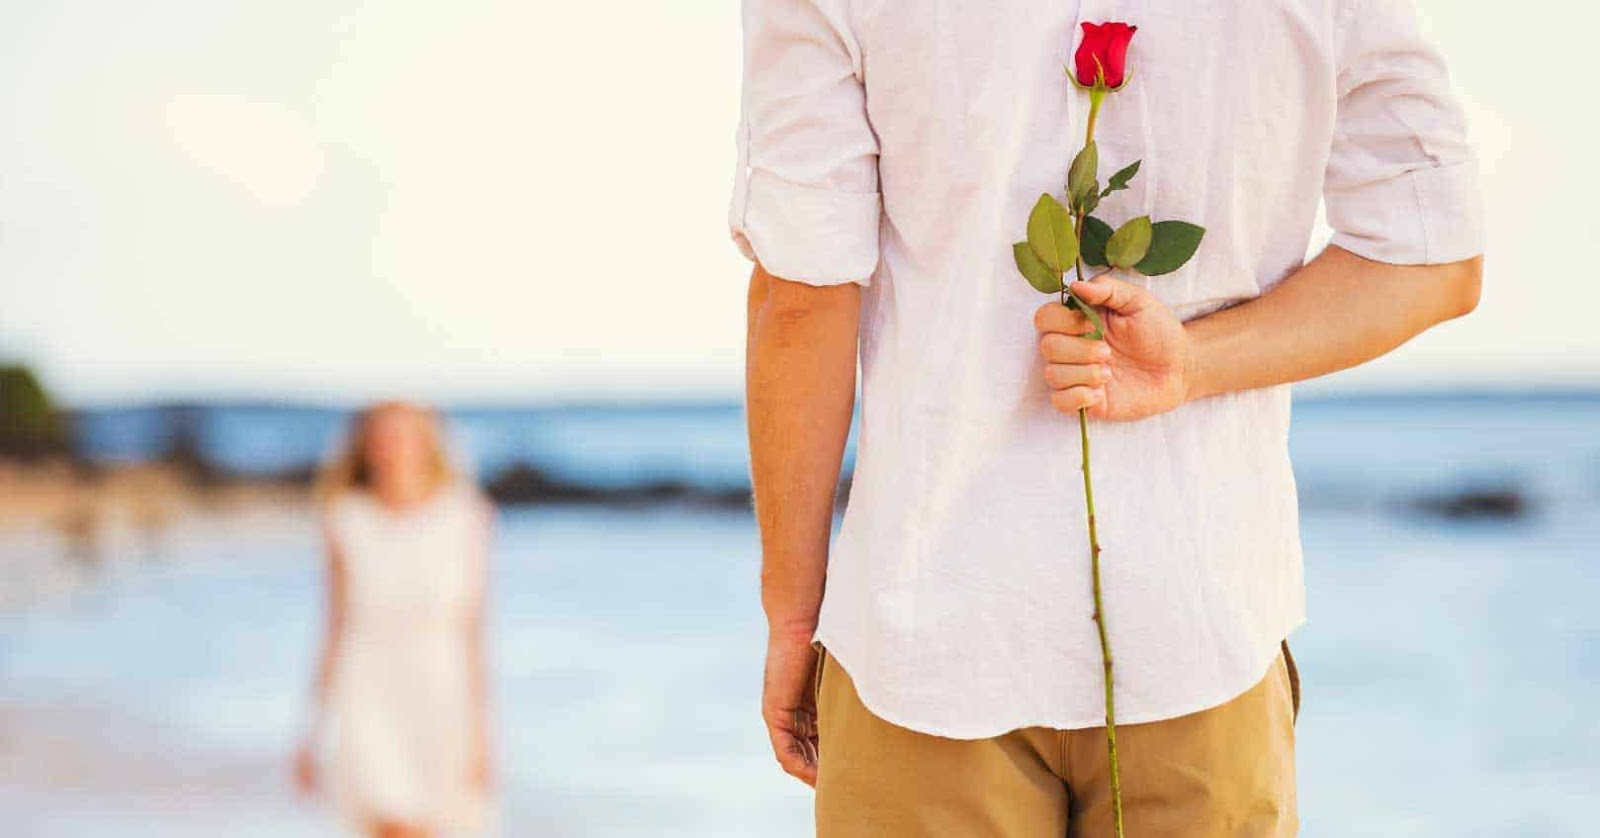 Meaningful Ways To Make Your Girlfriend Happy